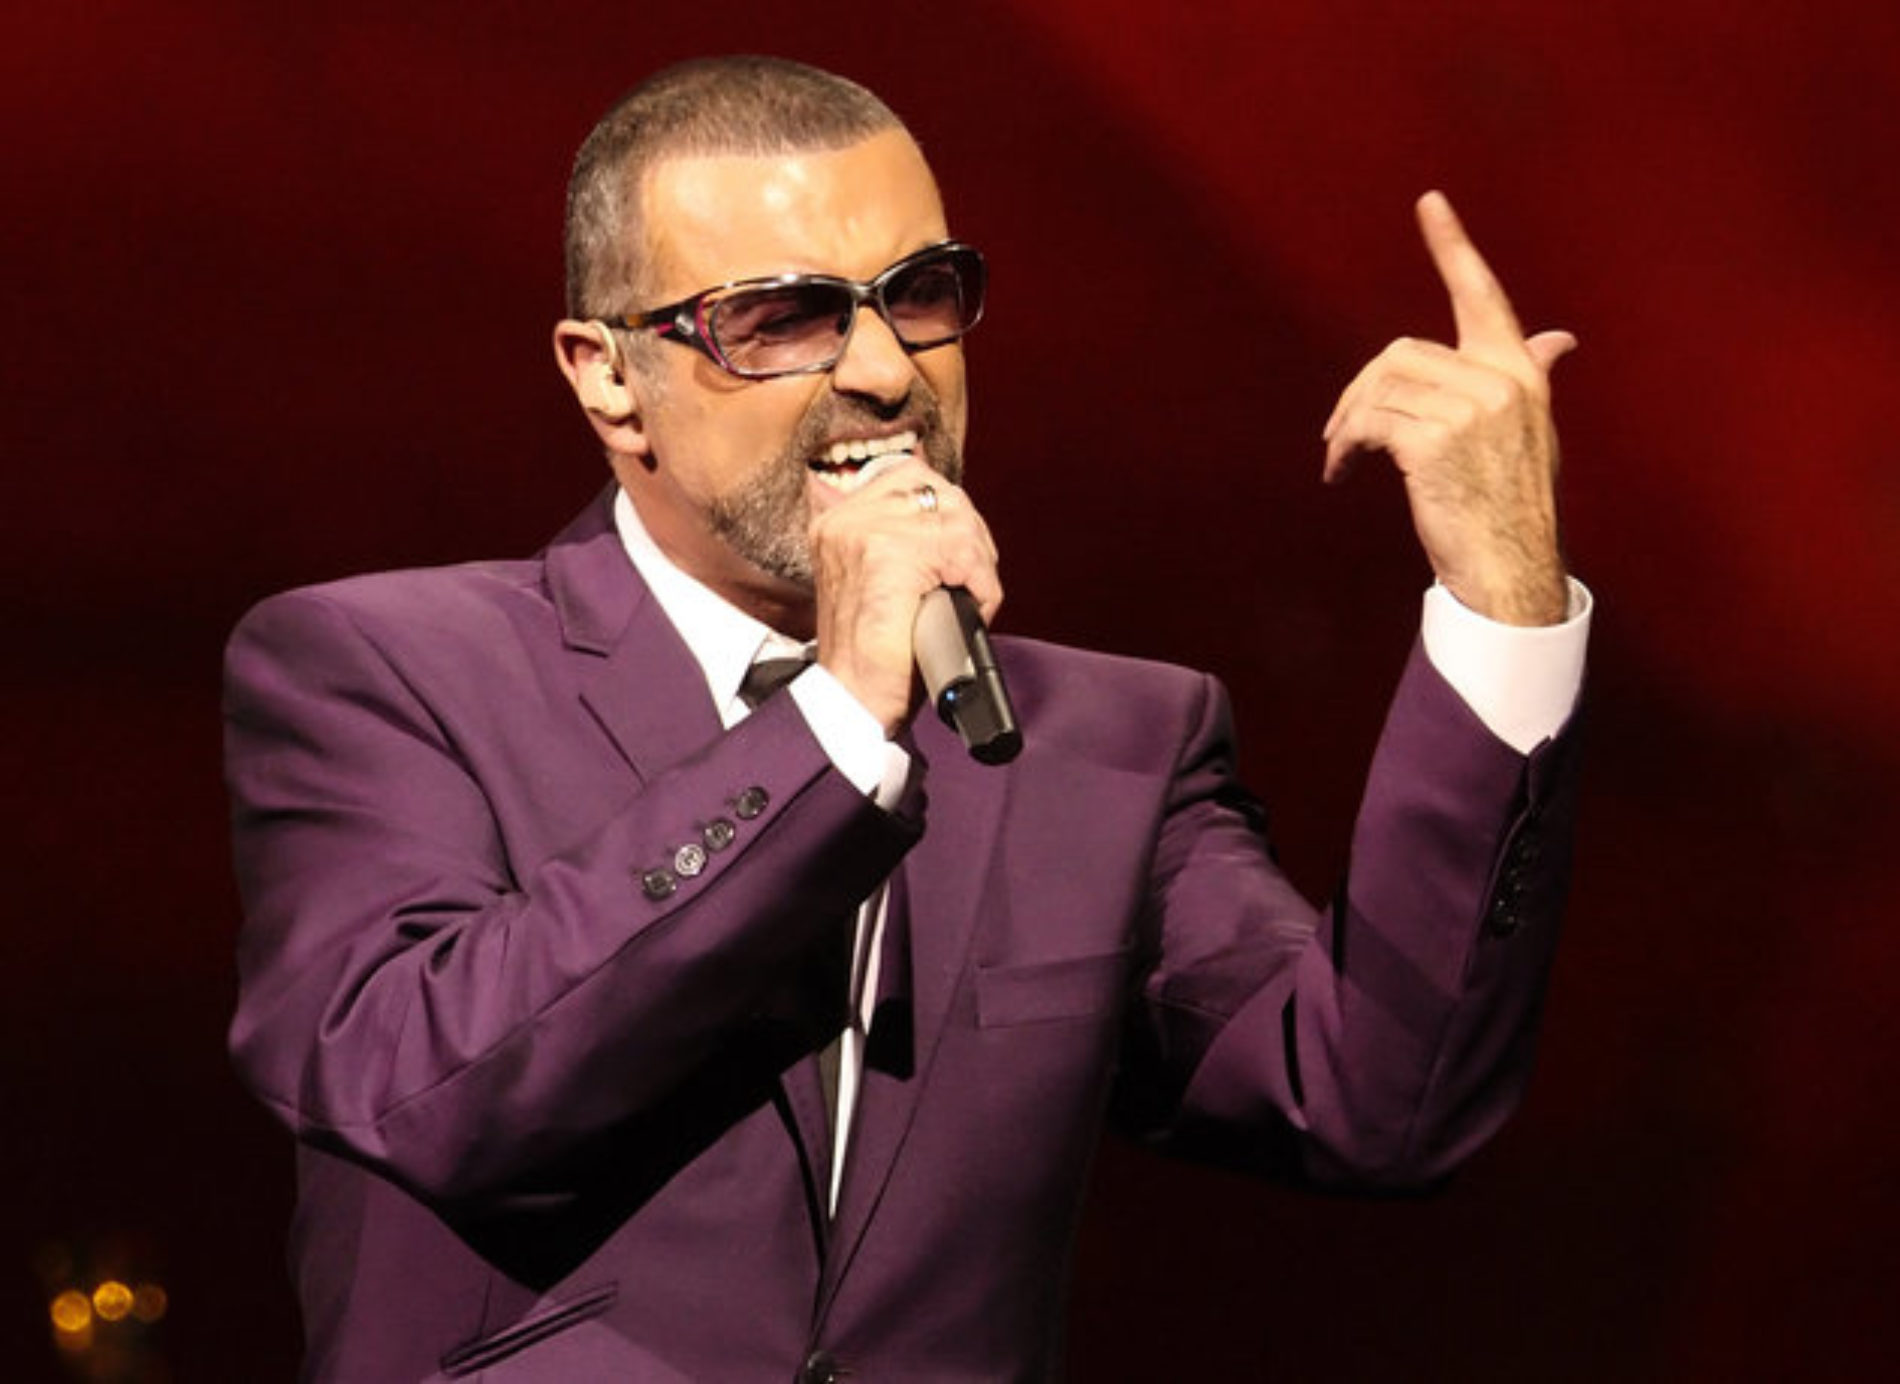 That Piece About How George Michael Should Be Honoured For The 'Filthy Gay Fucker' That He Was